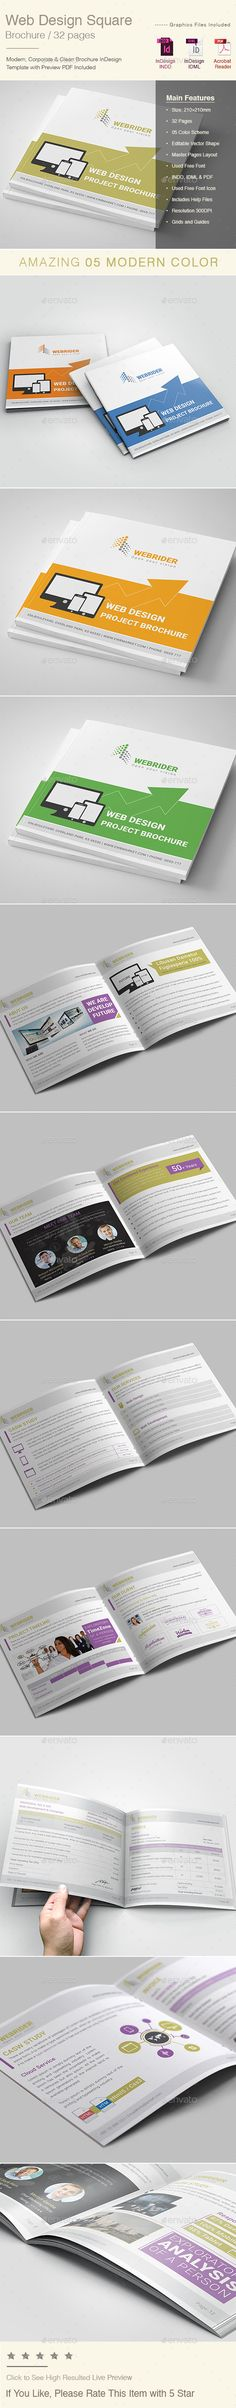 Professional \ Clean Brand Manual Template InDesign INDD - 56 - business manual template